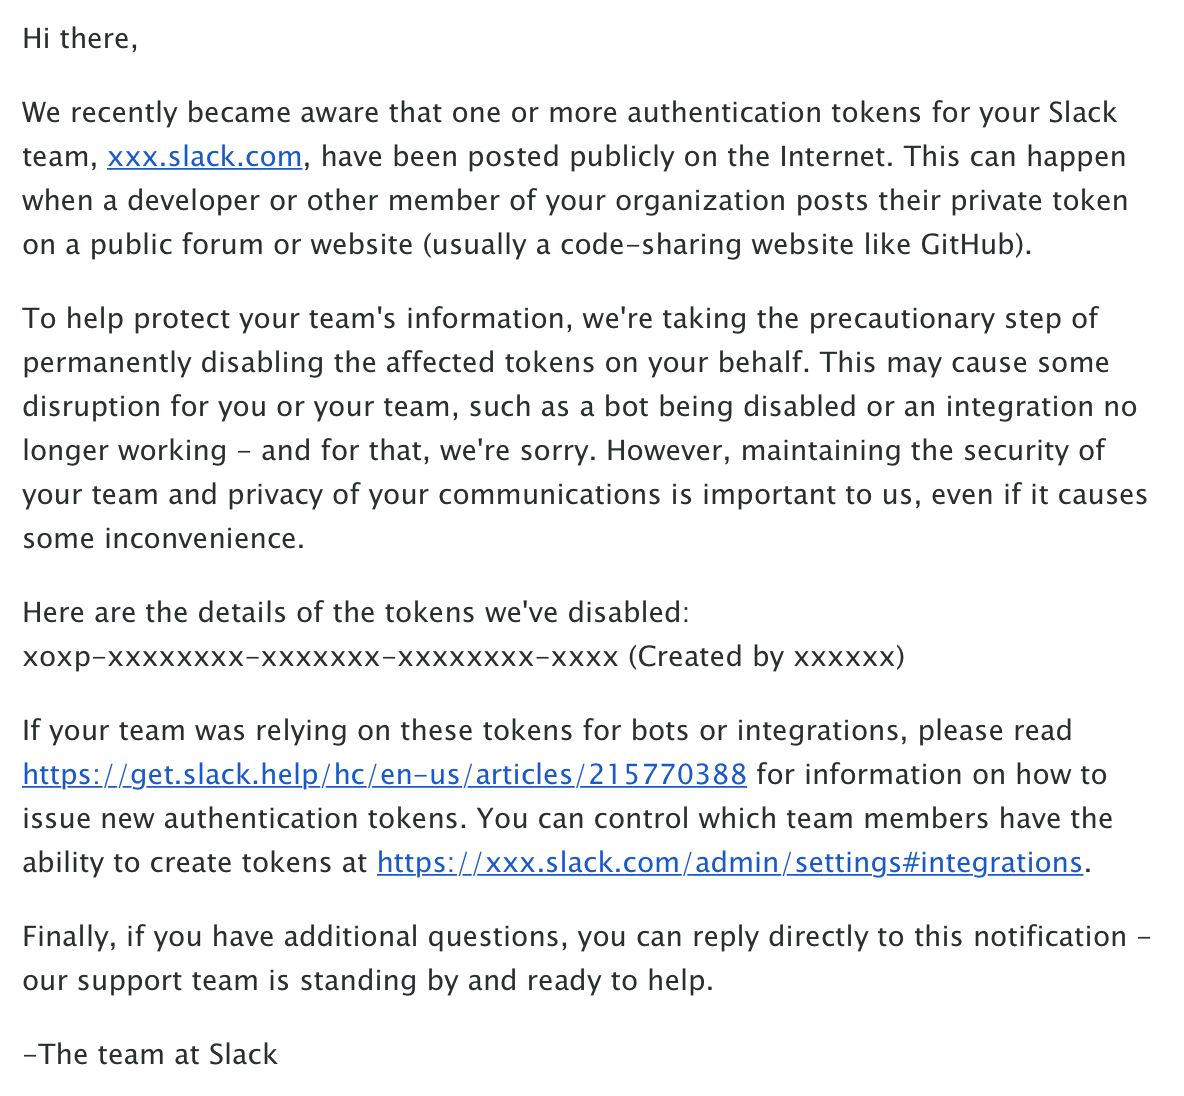 Slack's Security Email